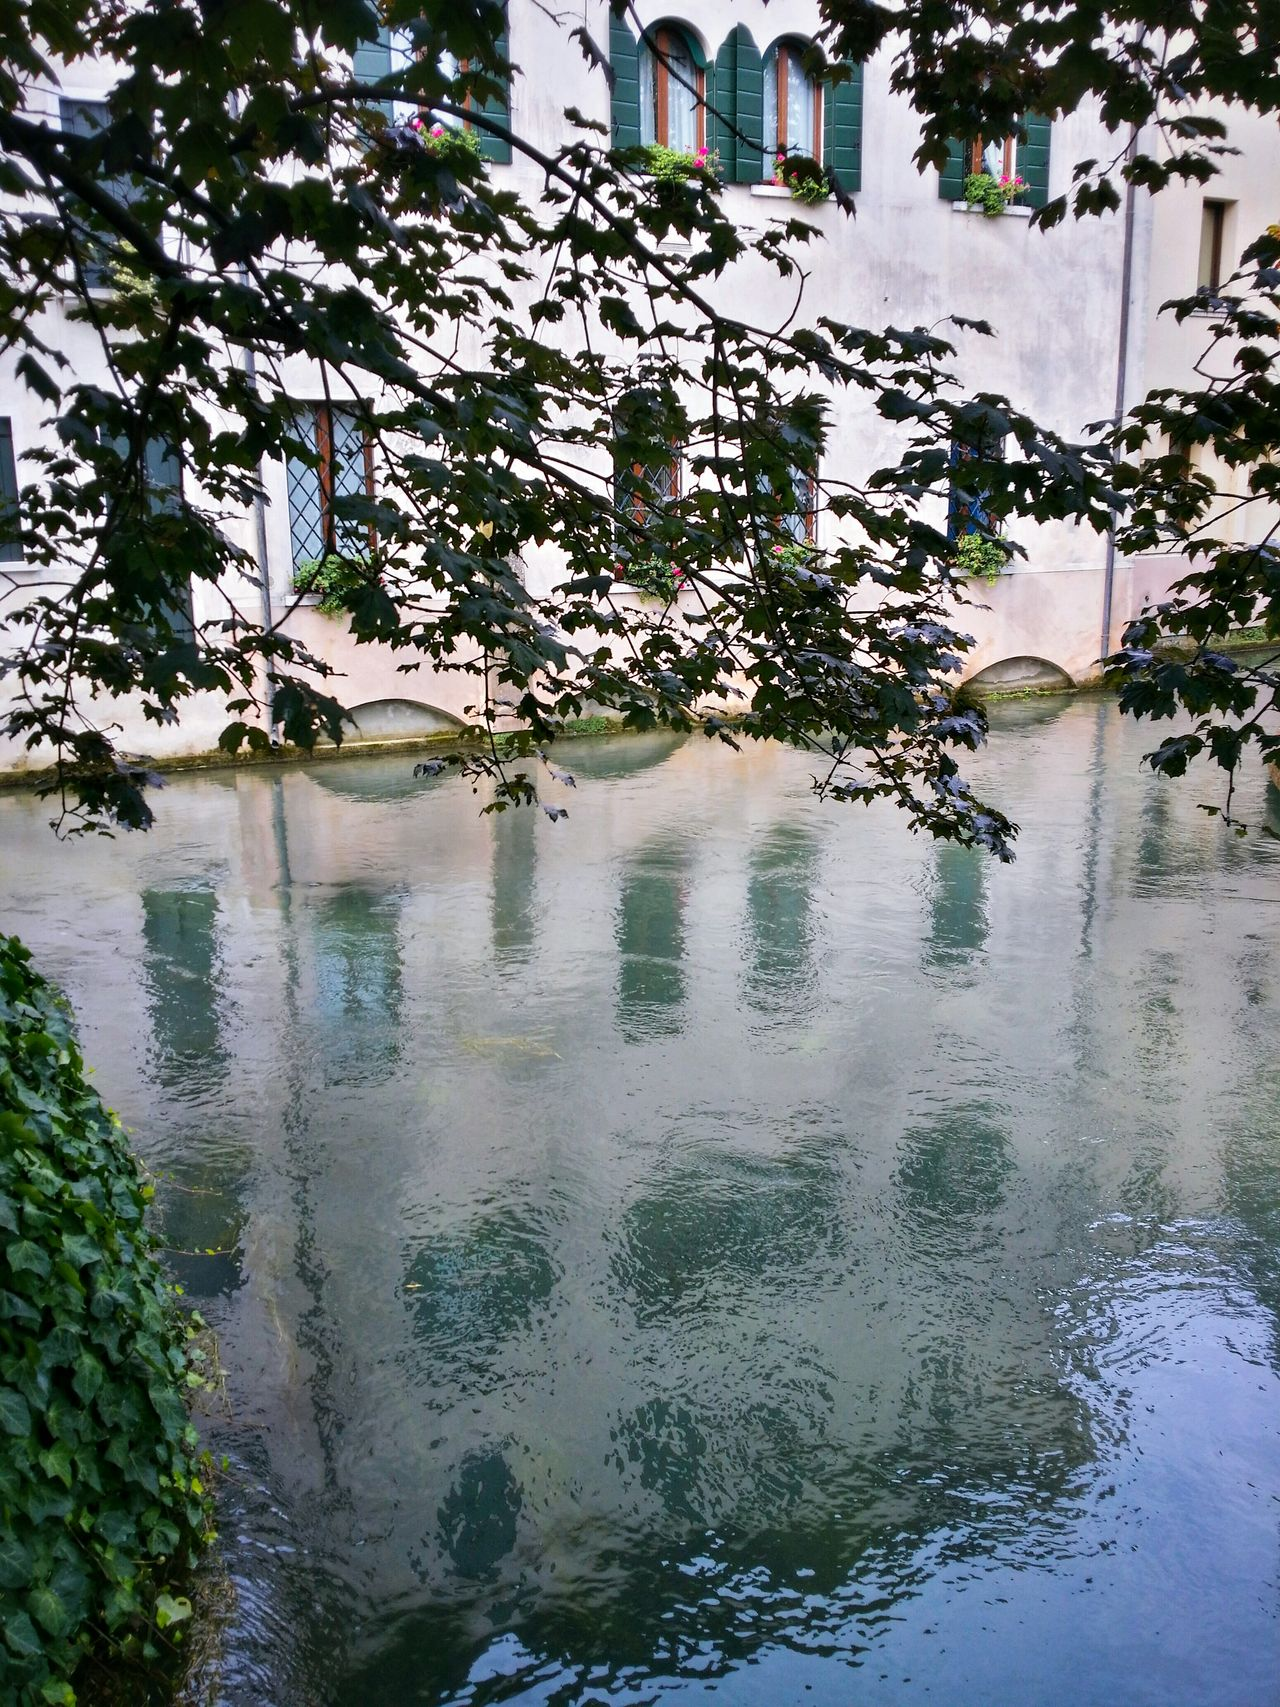 Late Summer Reflections Treviso Veneto Italy Travel Photography Travel Voyage Traveling Mobile Photography Fine Art Photography Historical Buildings Canals Water Flows Reflections And Shadows Stretched Tree Branches Architecture Window Patterns